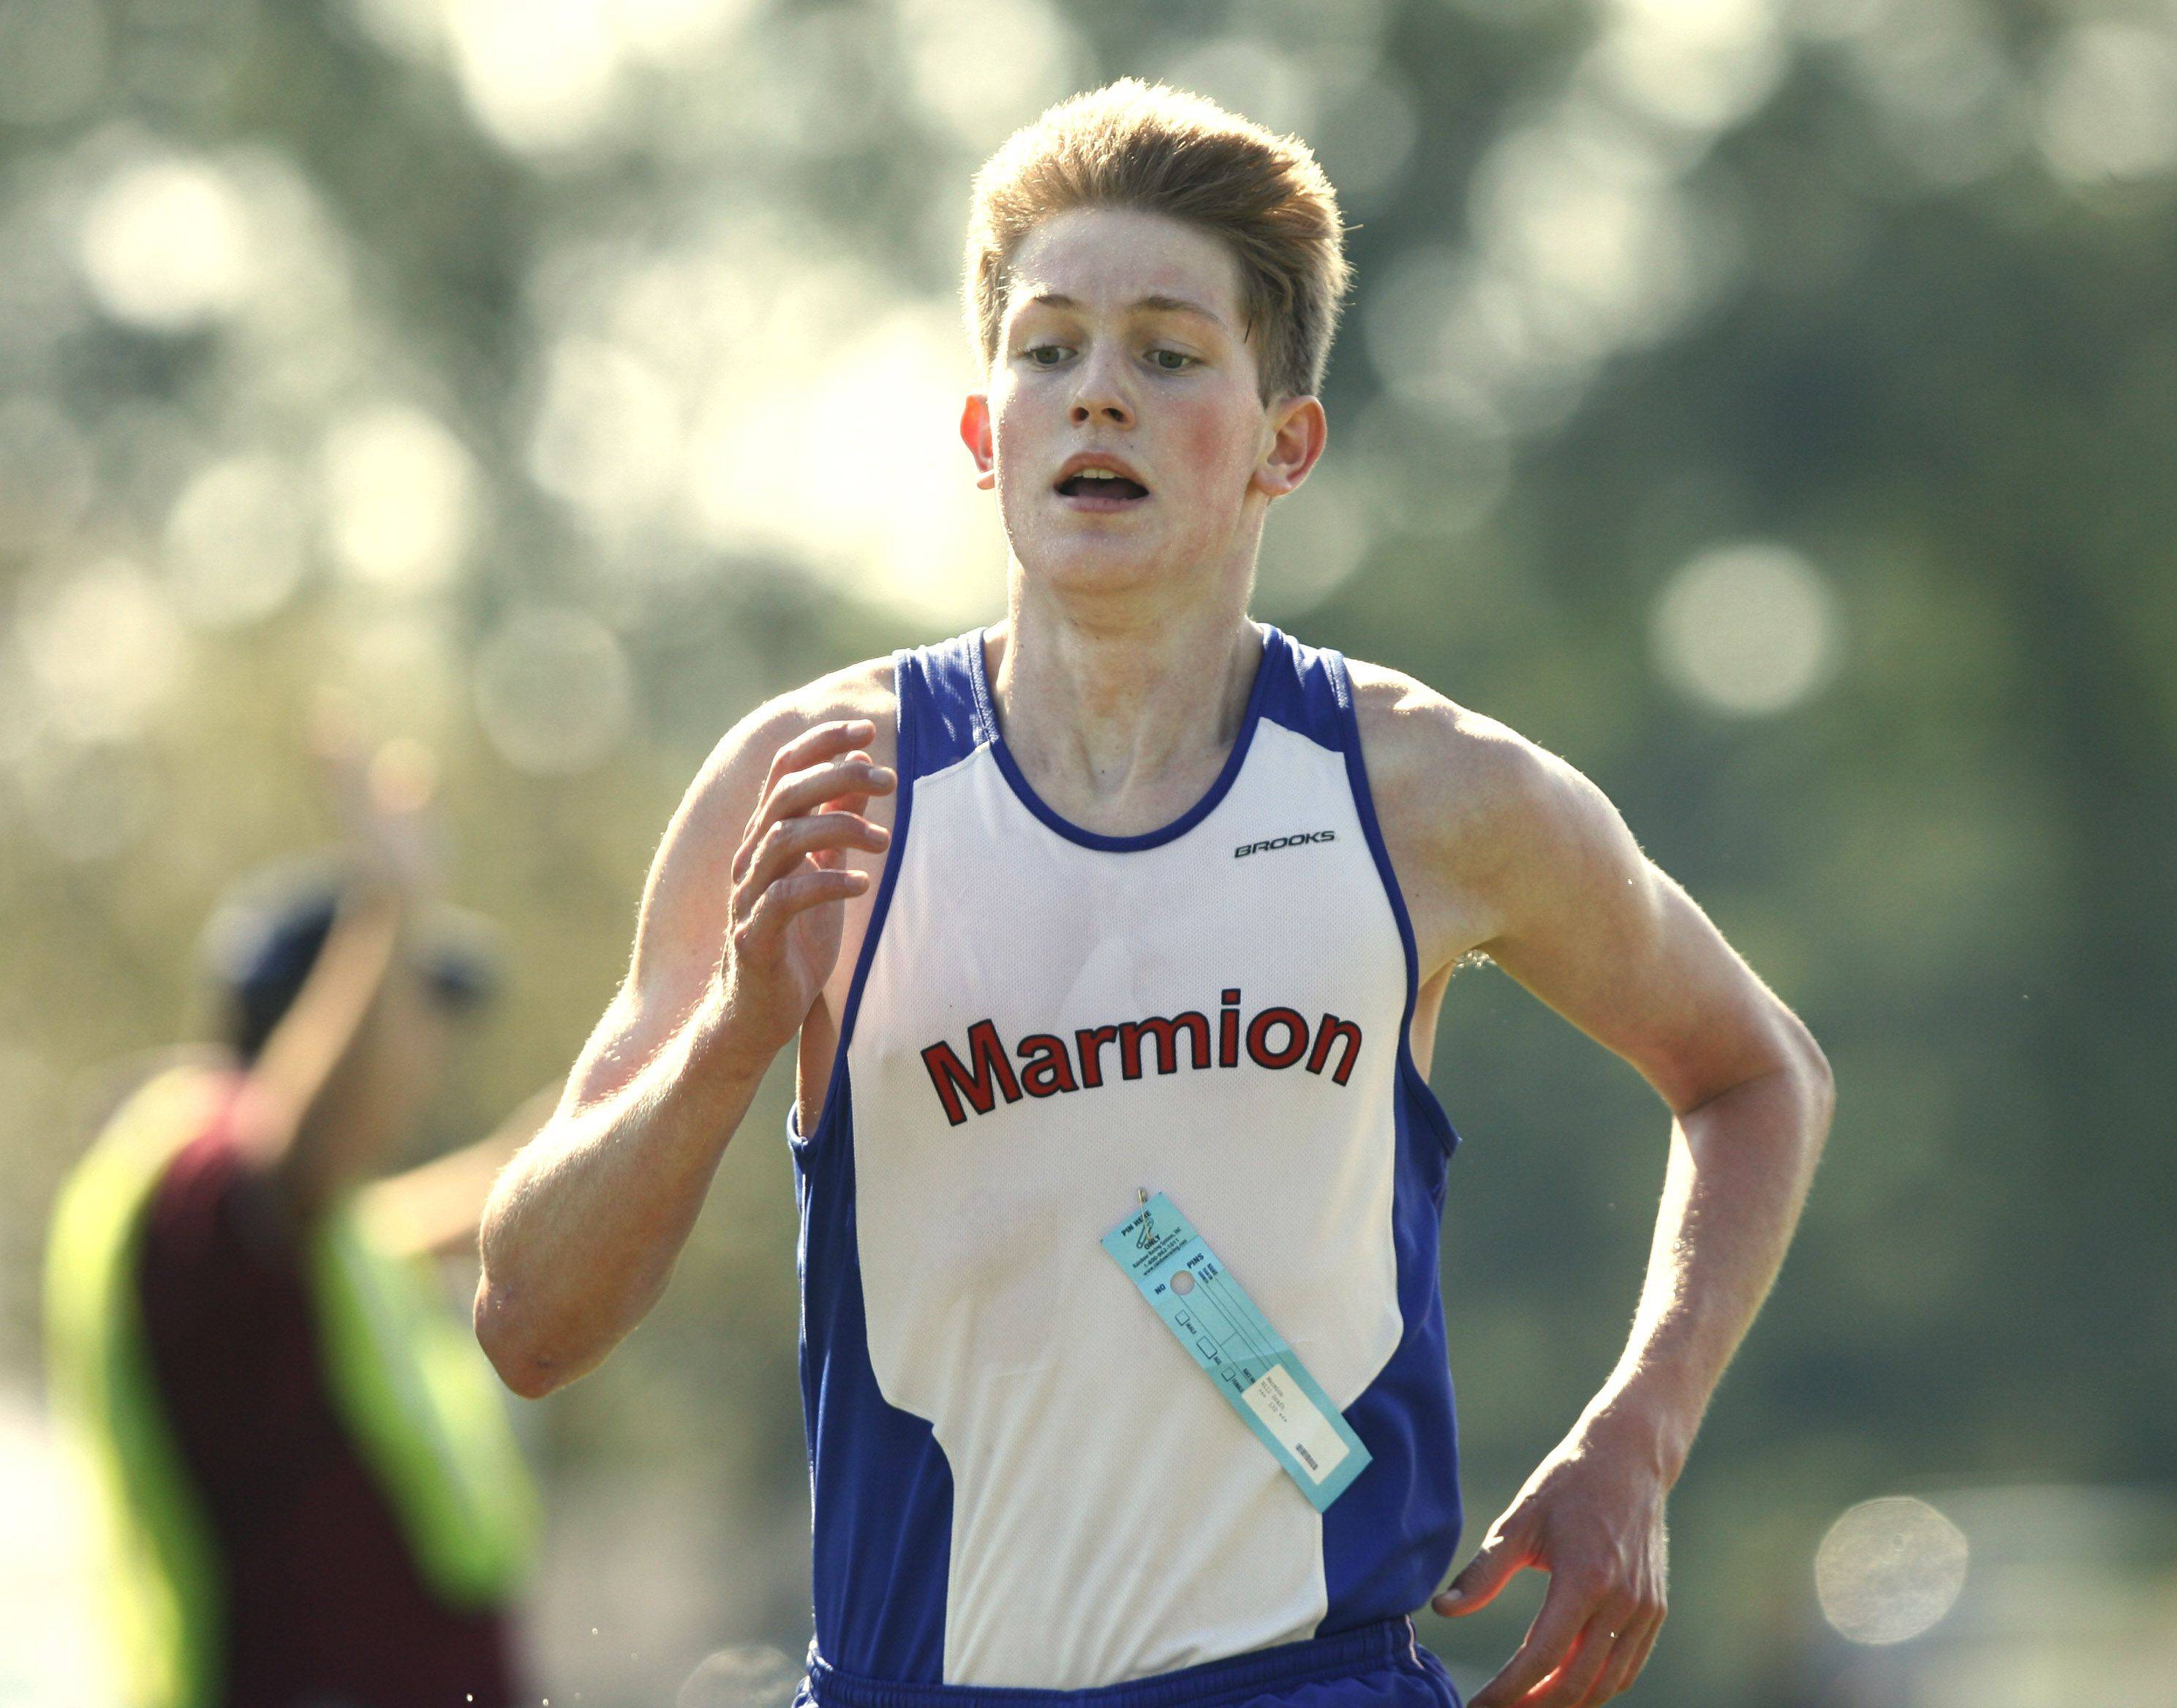 Marmion's Will Graft finished third at the season-opening Aurora City Meet last Saturday.